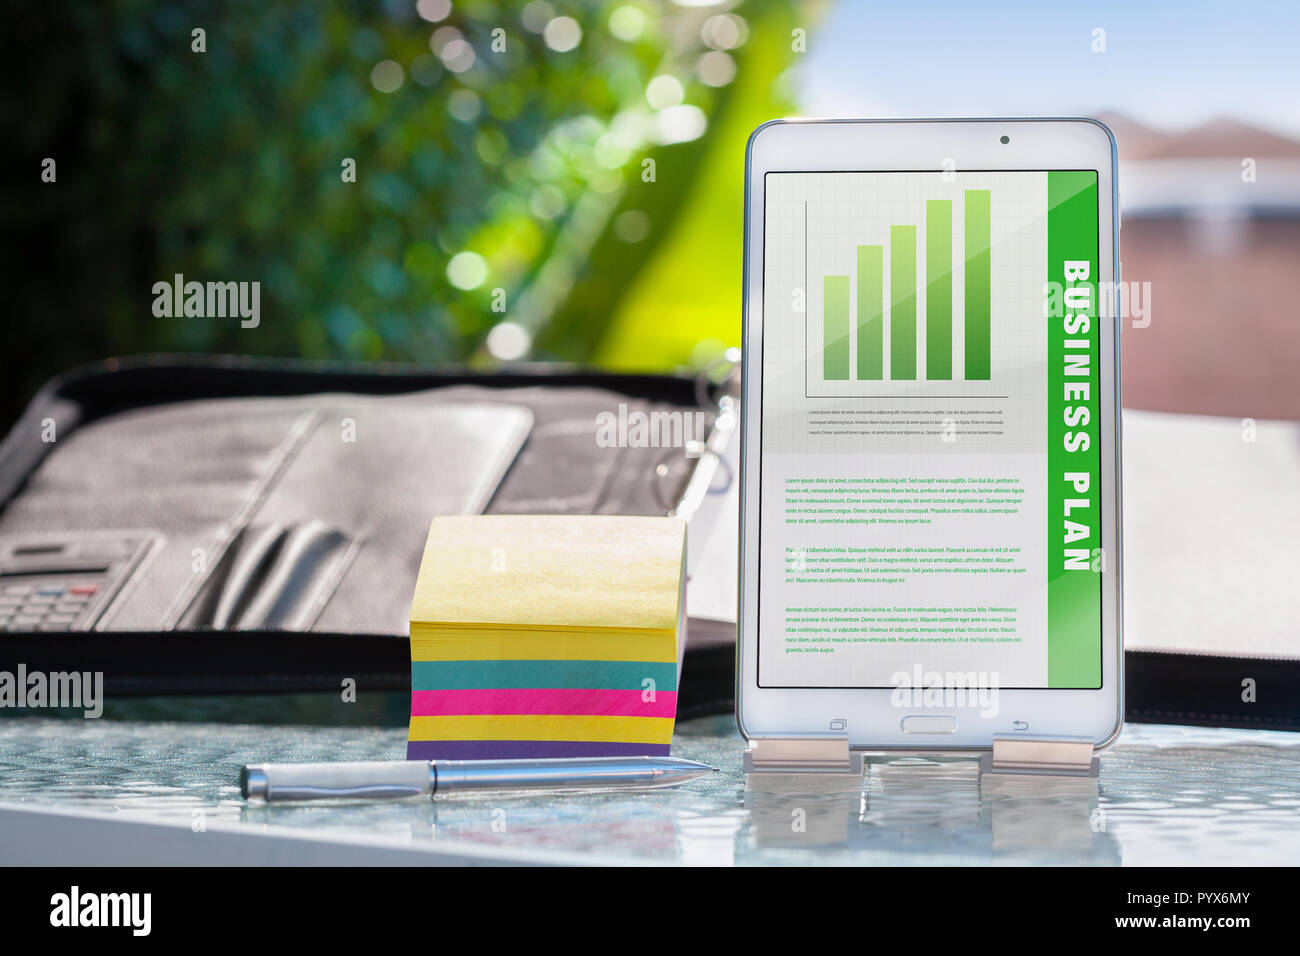 Business plan presentation on a mobile device, phone or tablet with colorful notes, binder, and pen in outdoor meeting. - Stock Image